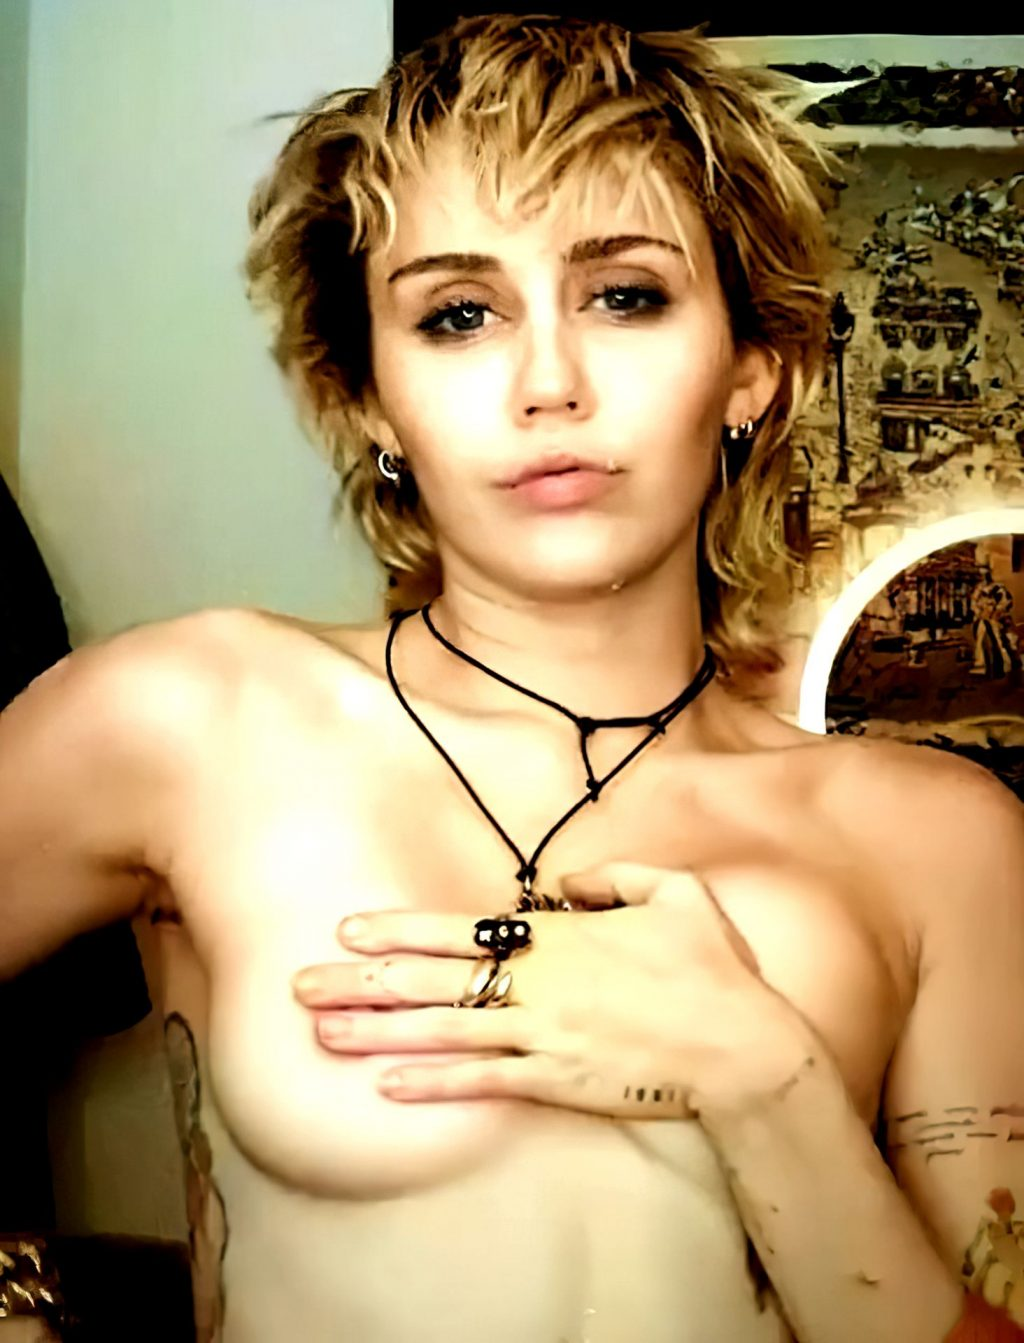 Miley Cyrus Poses Topless (10 Pics + Video)